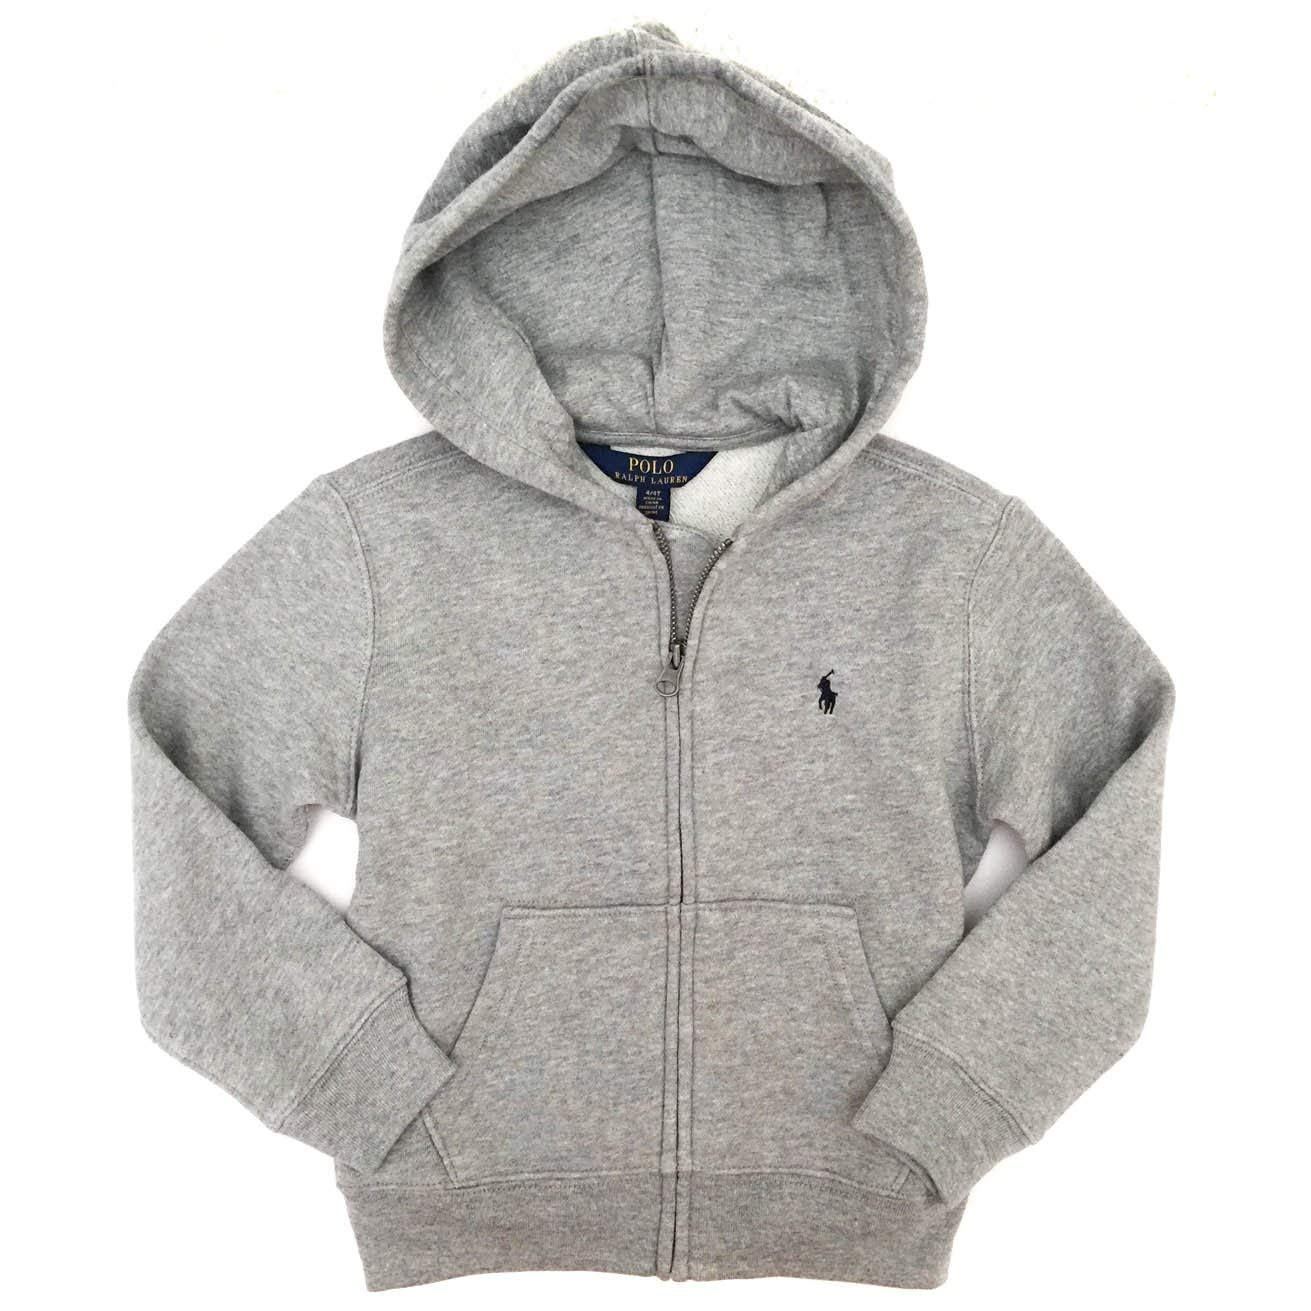 6ed3968127fc Amazon.com  Polo Ralph Lauren Boys Zip Up Hoodie  Clothing